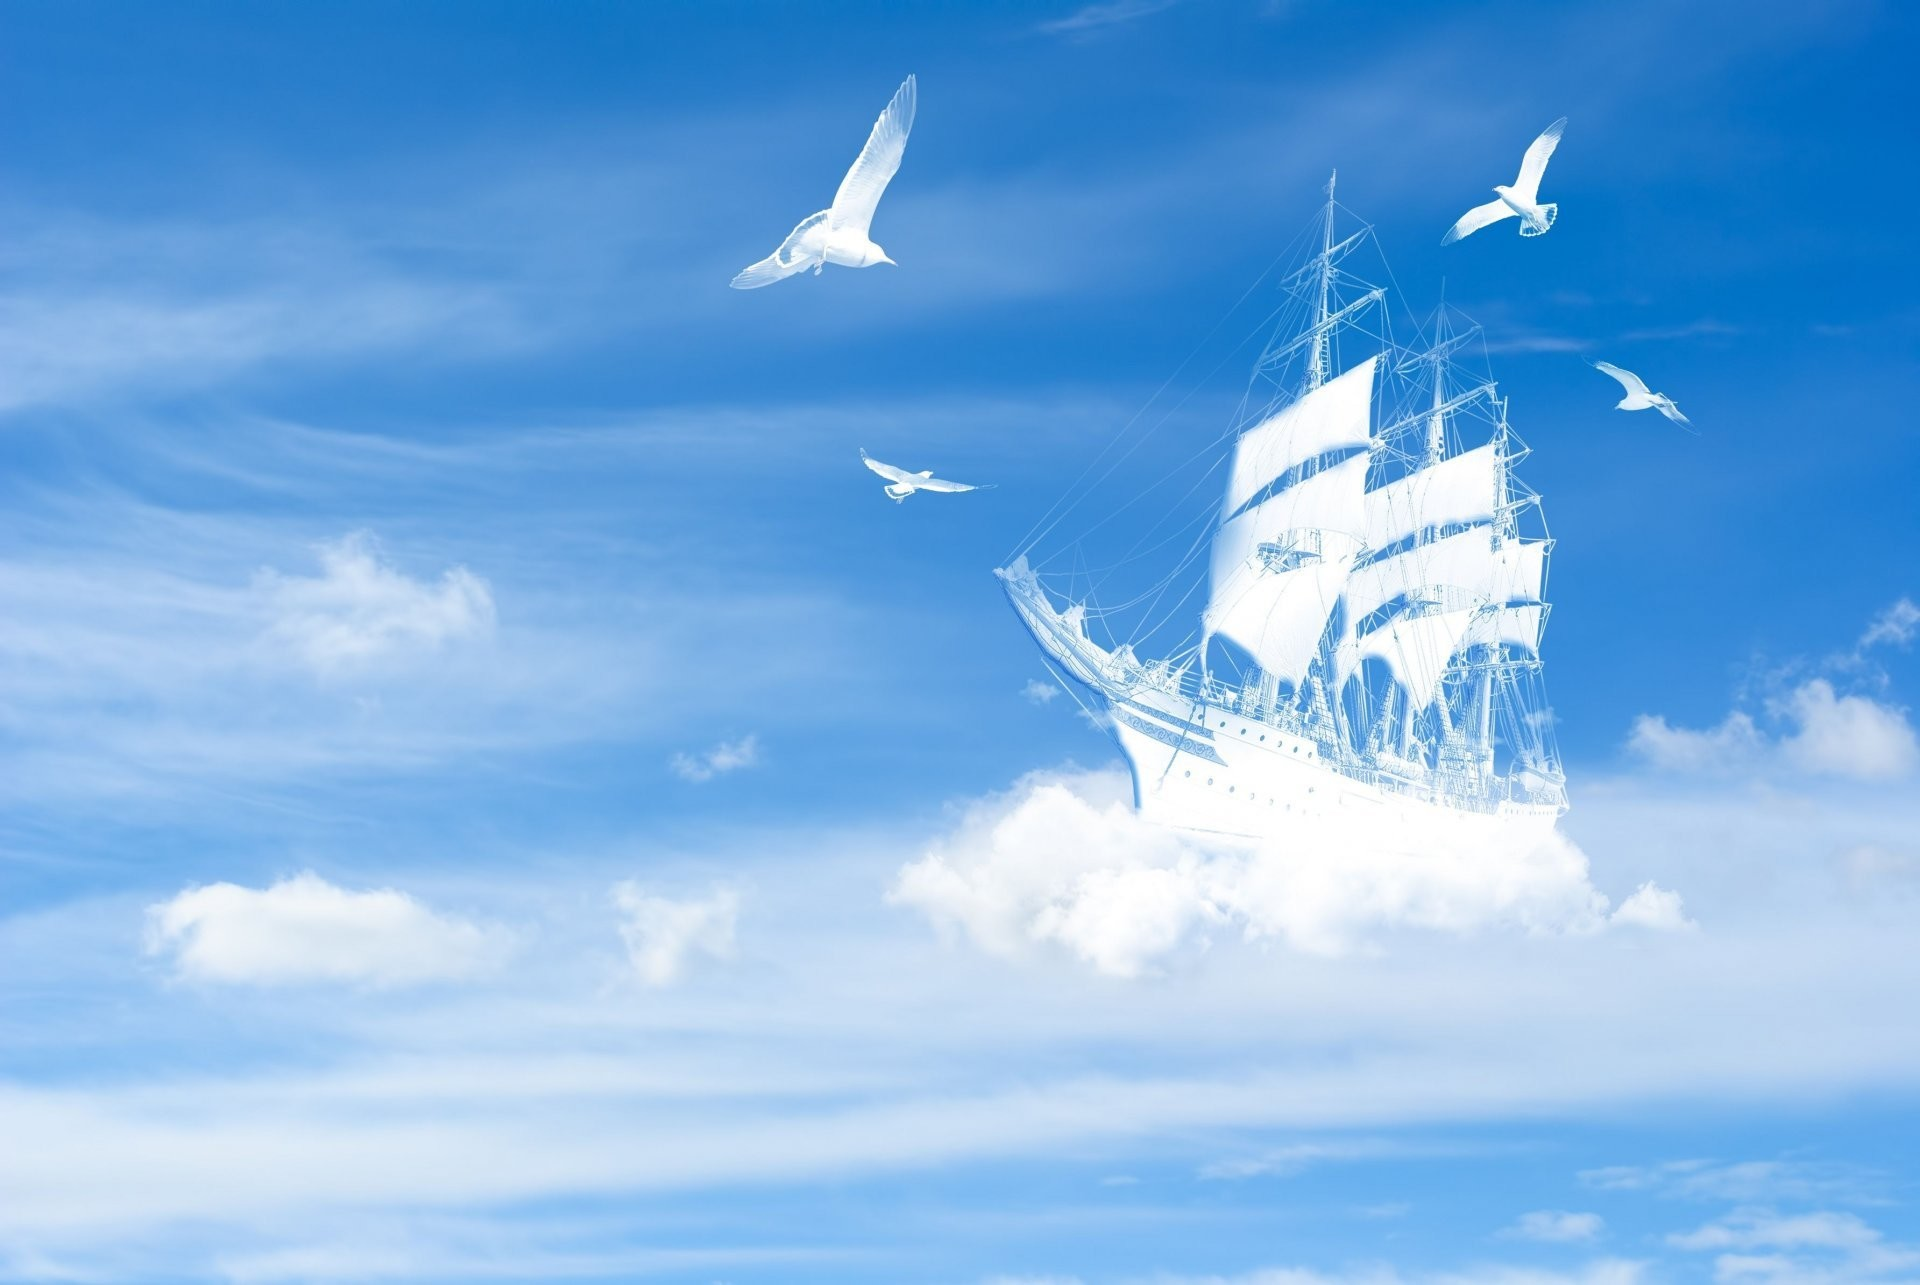 landscape sky clouds ship ships yacht poultry birds white blue background  wallpaper widescreen full screen widescreen